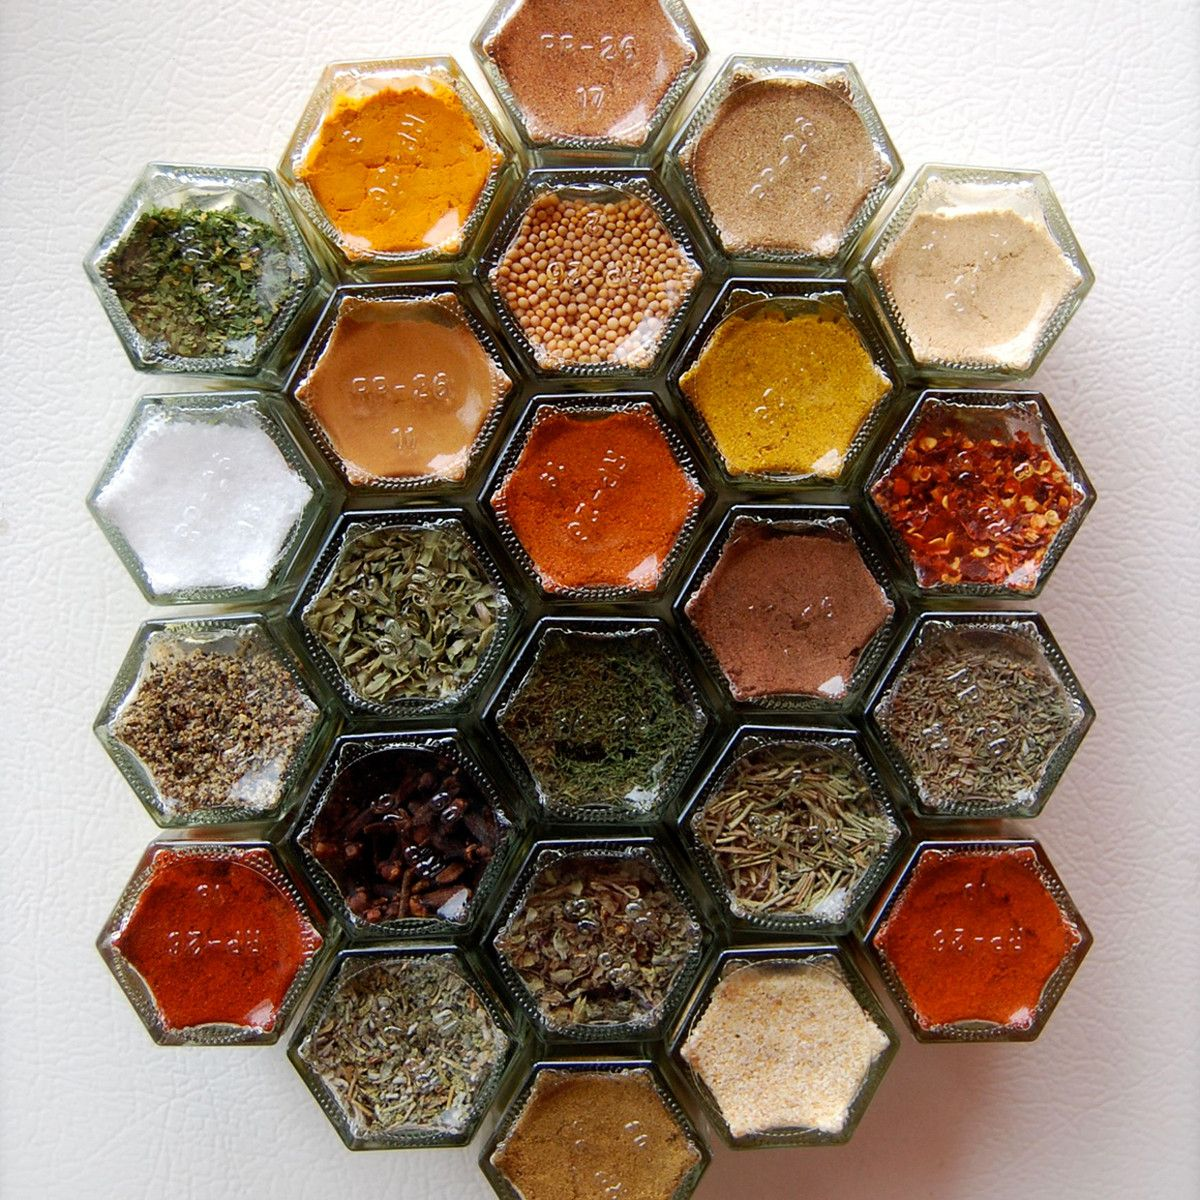 Creative Spice Storage Magnetic Spice Jars What A Good Idea I Feel Like I Could